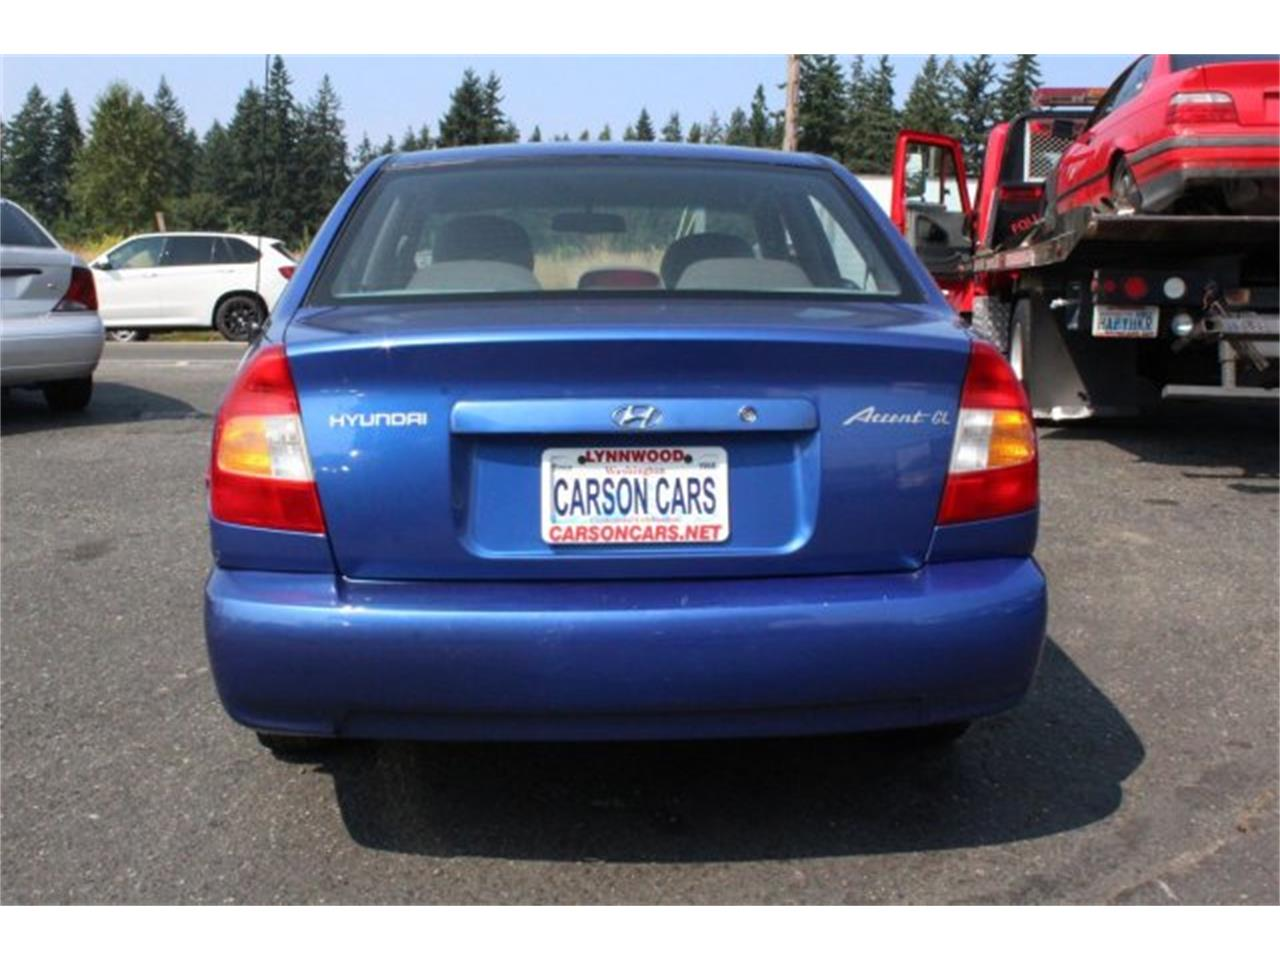 2002 hyundai accent for sale classiccars com cc 991454 2002 hyundai accent for sale